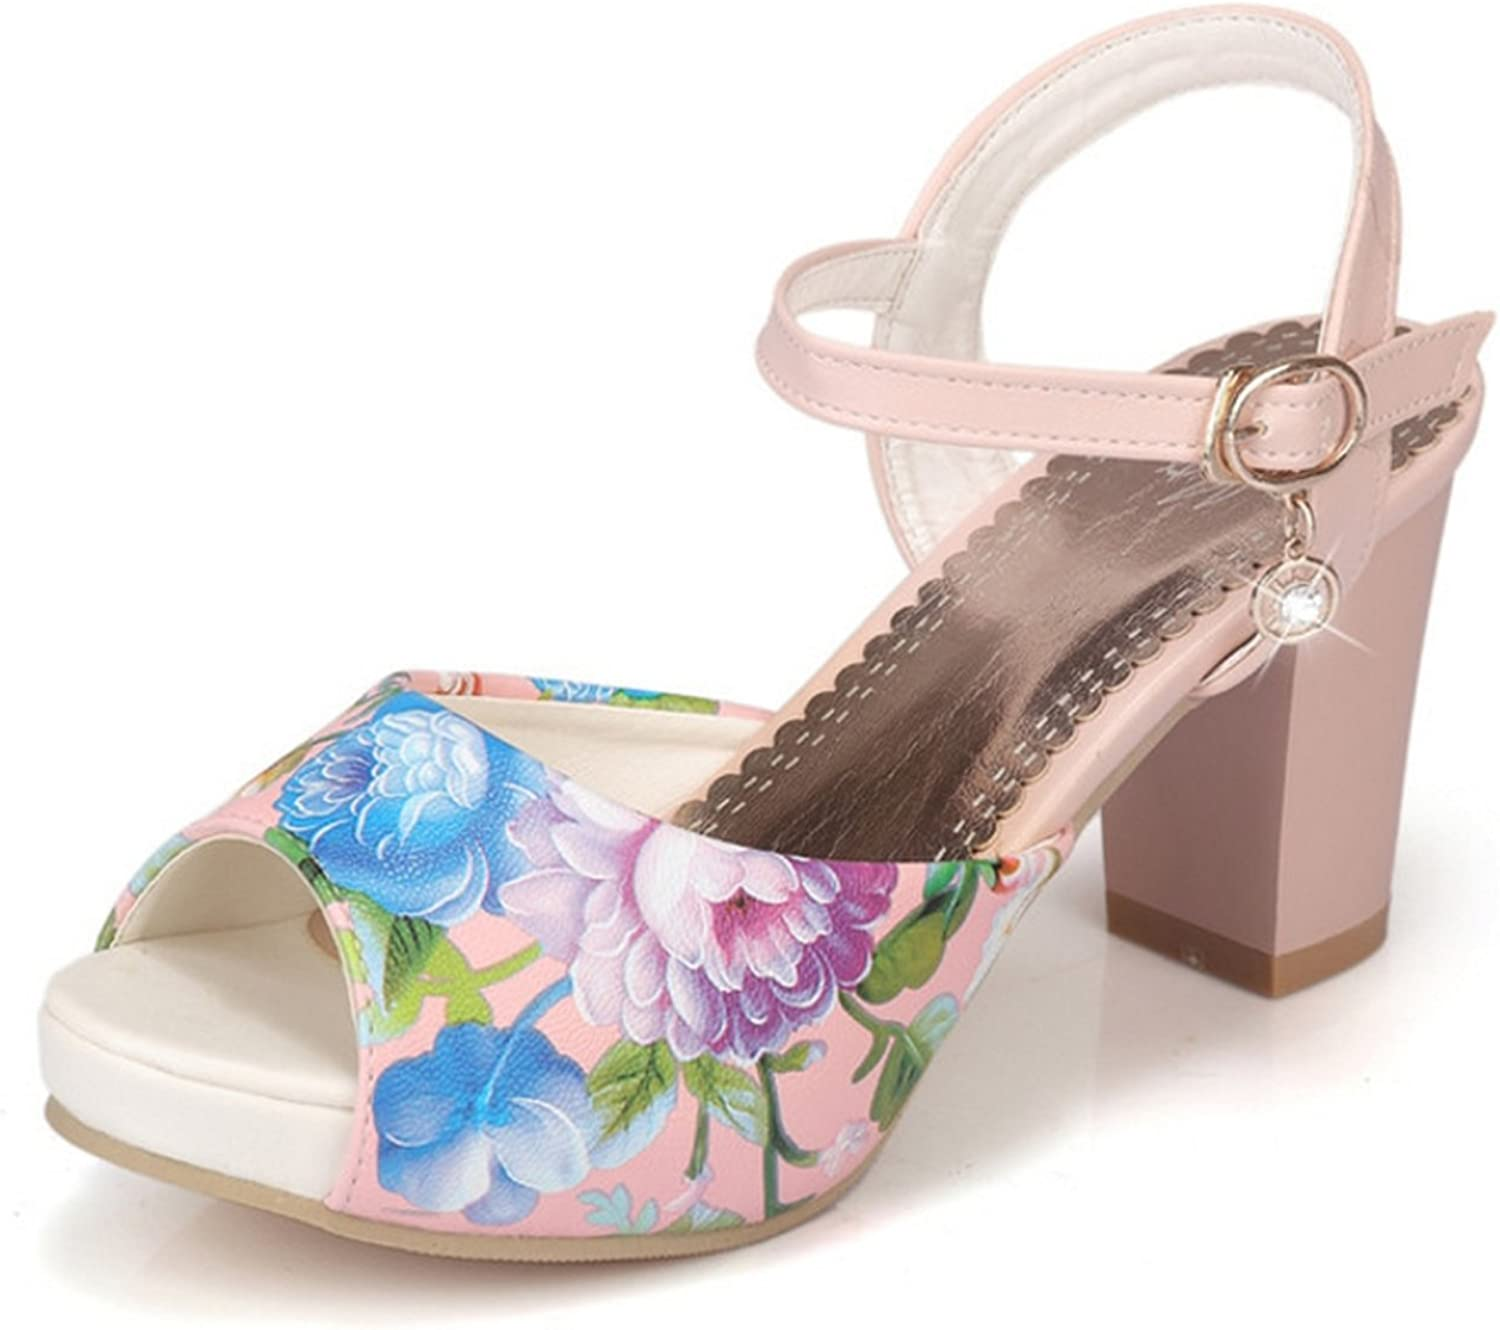 Nerefy Big Size 33-43 Chucky High Heels Women shoes Sweet Printing Open Toe Platform Buckle Strap Sandals